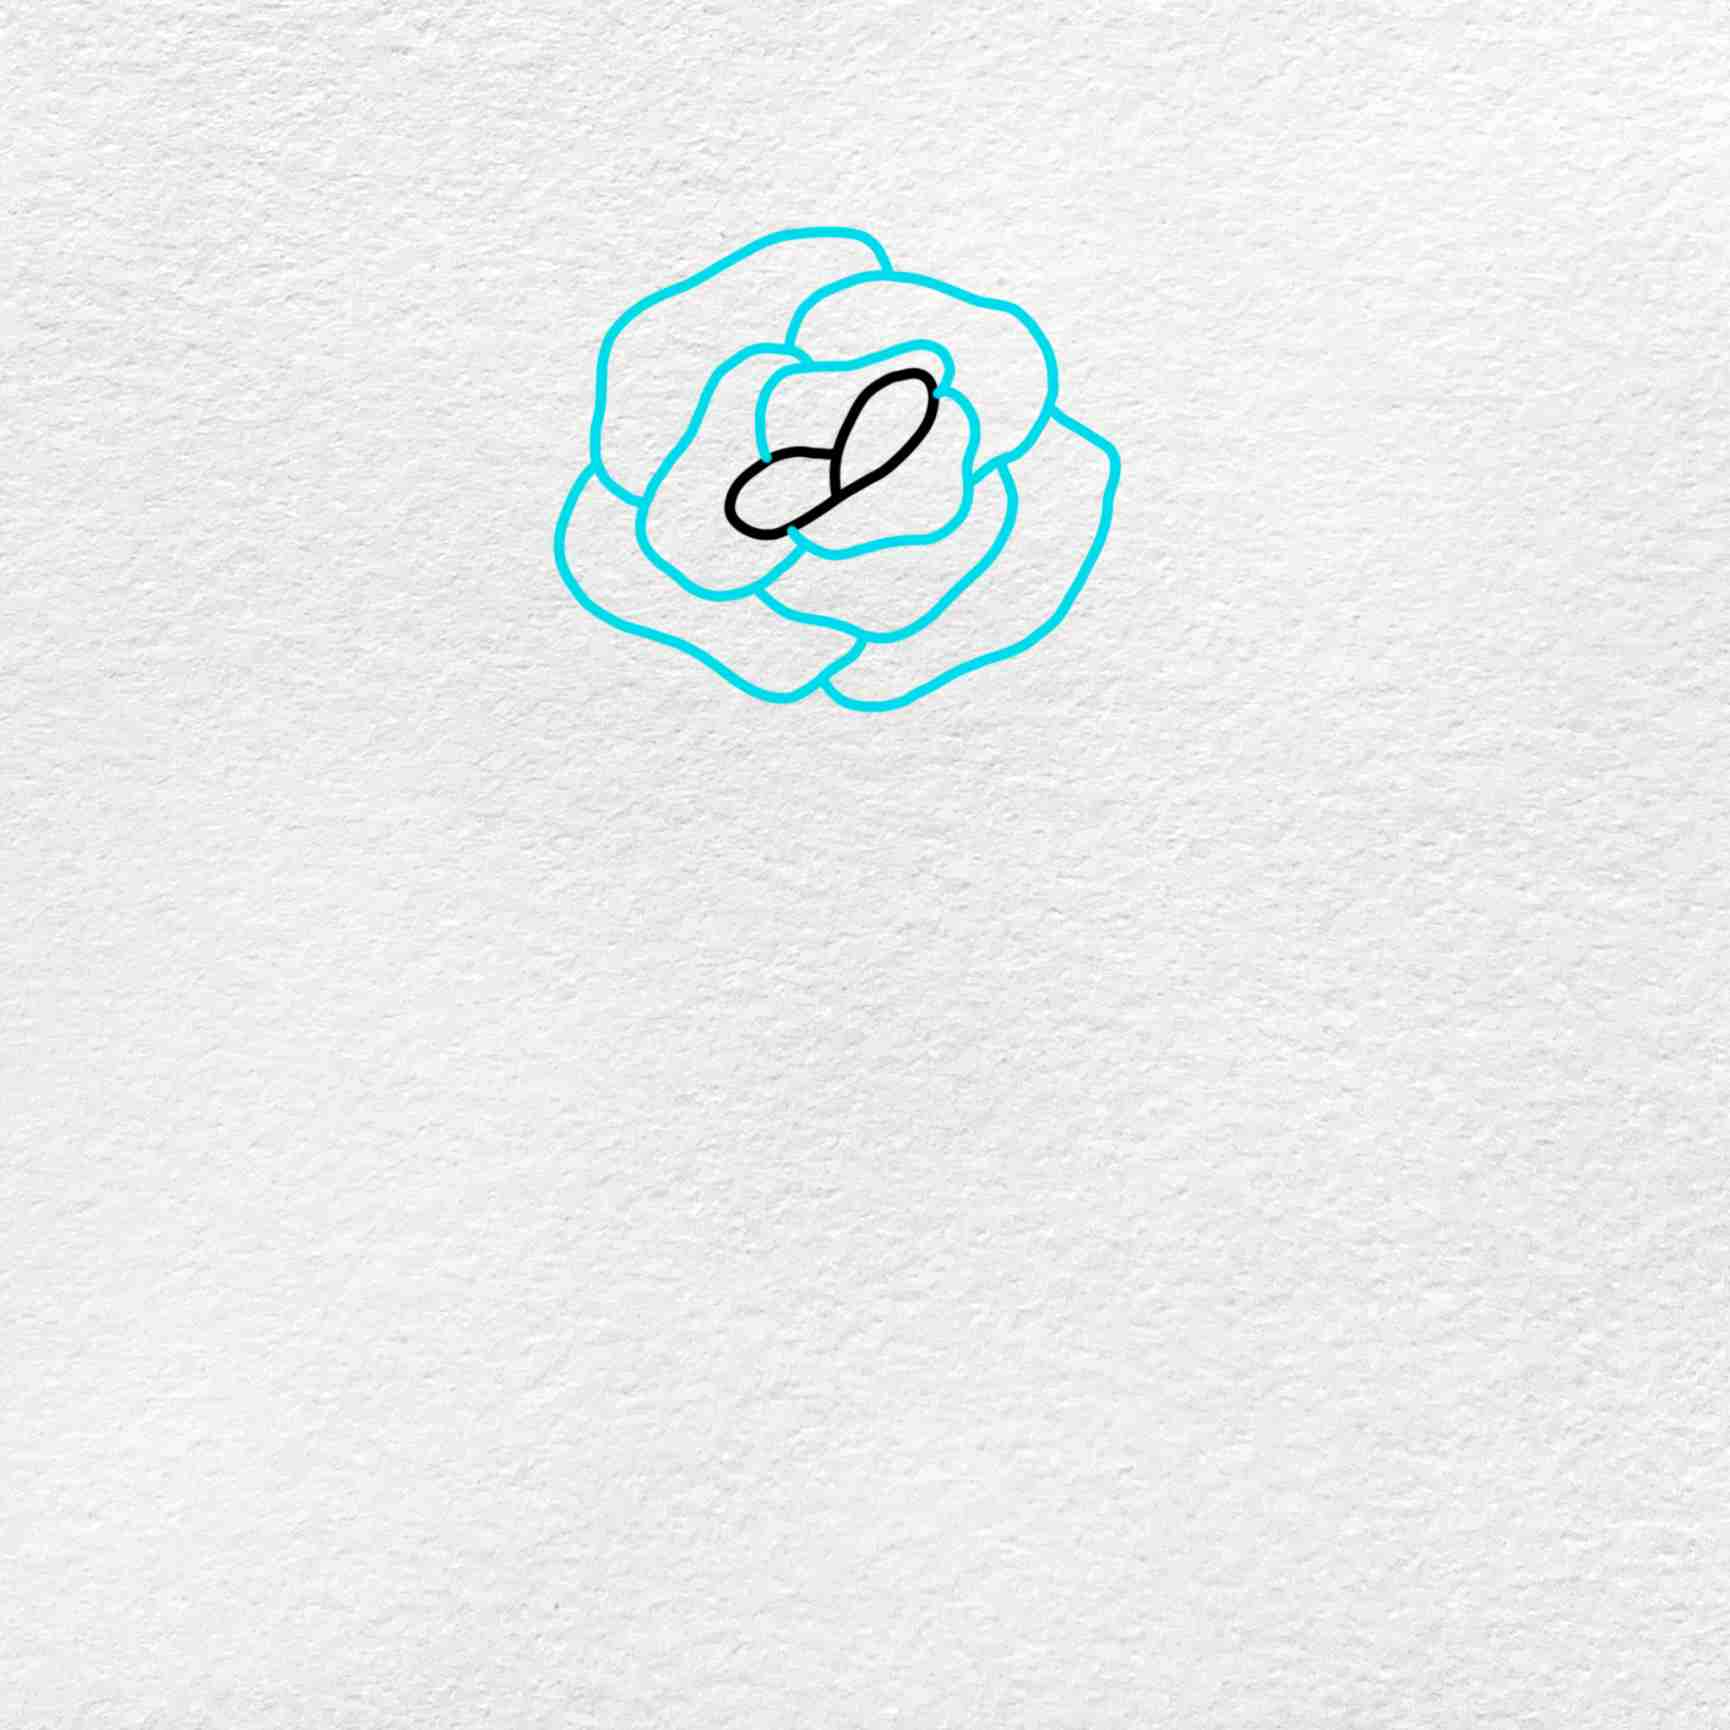 How To Draw A Rose Step By Step: Step 2